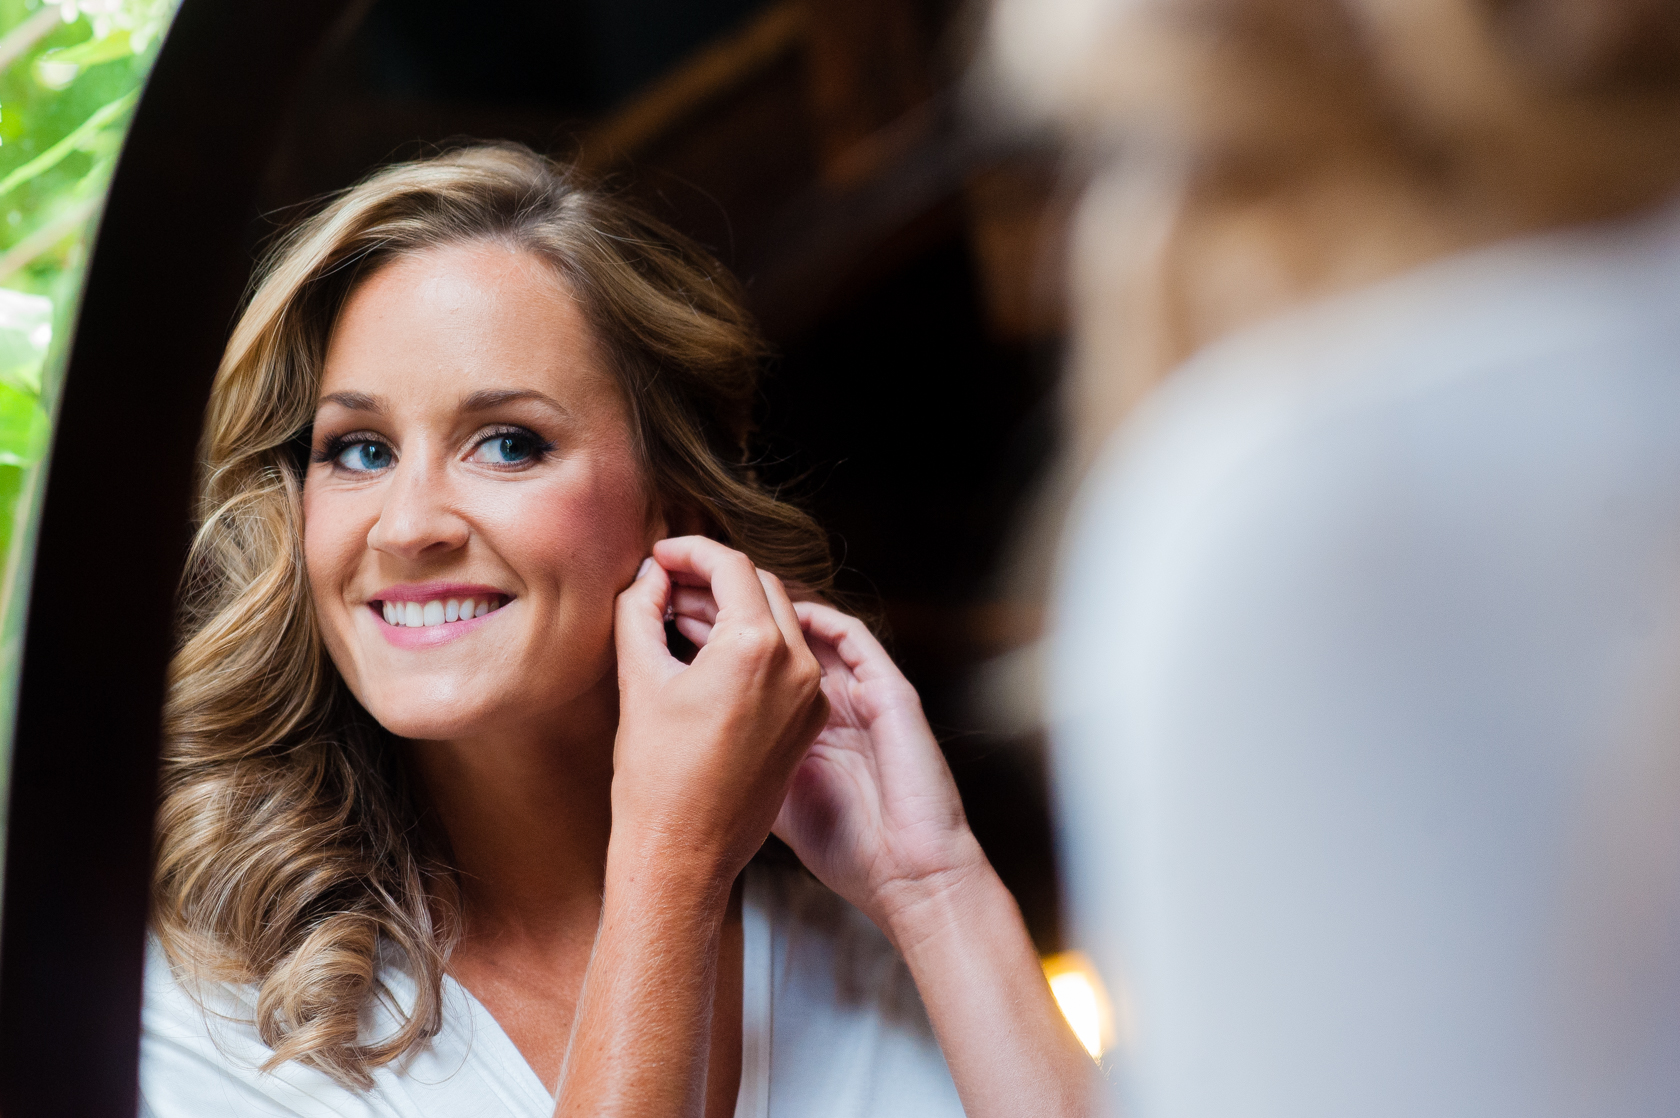 beautiful bride puts her earrings on in the mirror